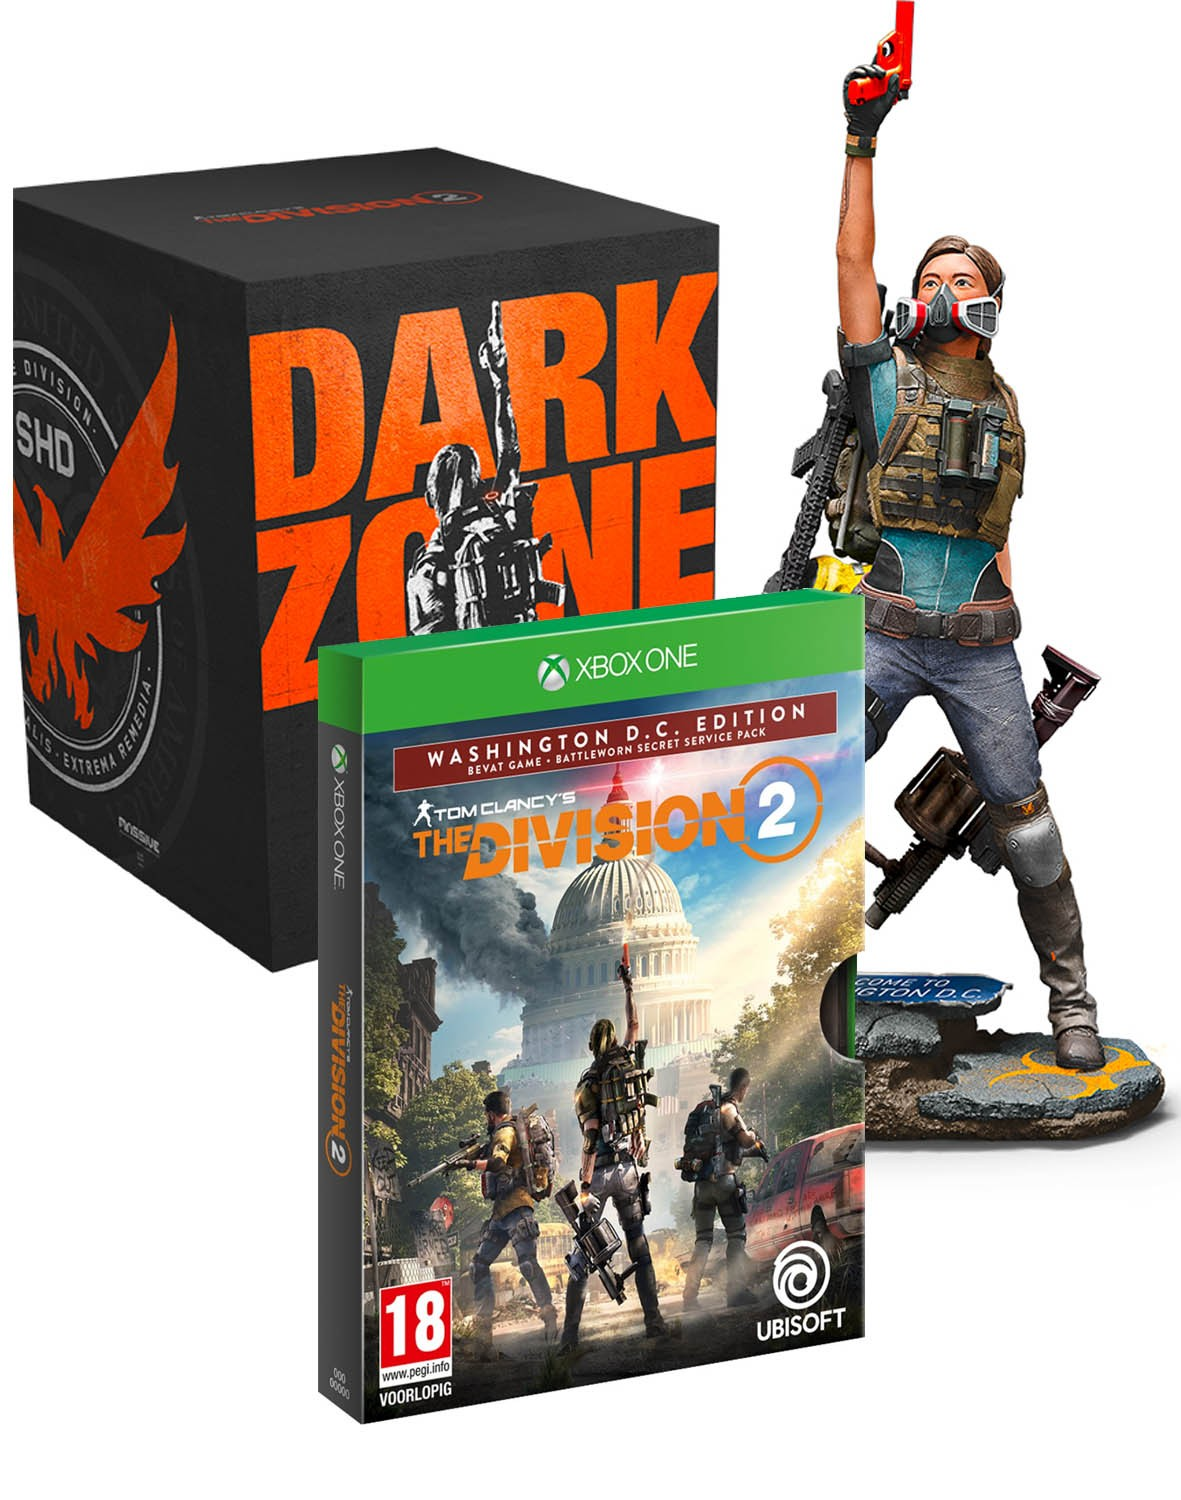 Tom Clancy's The Division 2 The Dark Zone Edition XBOX